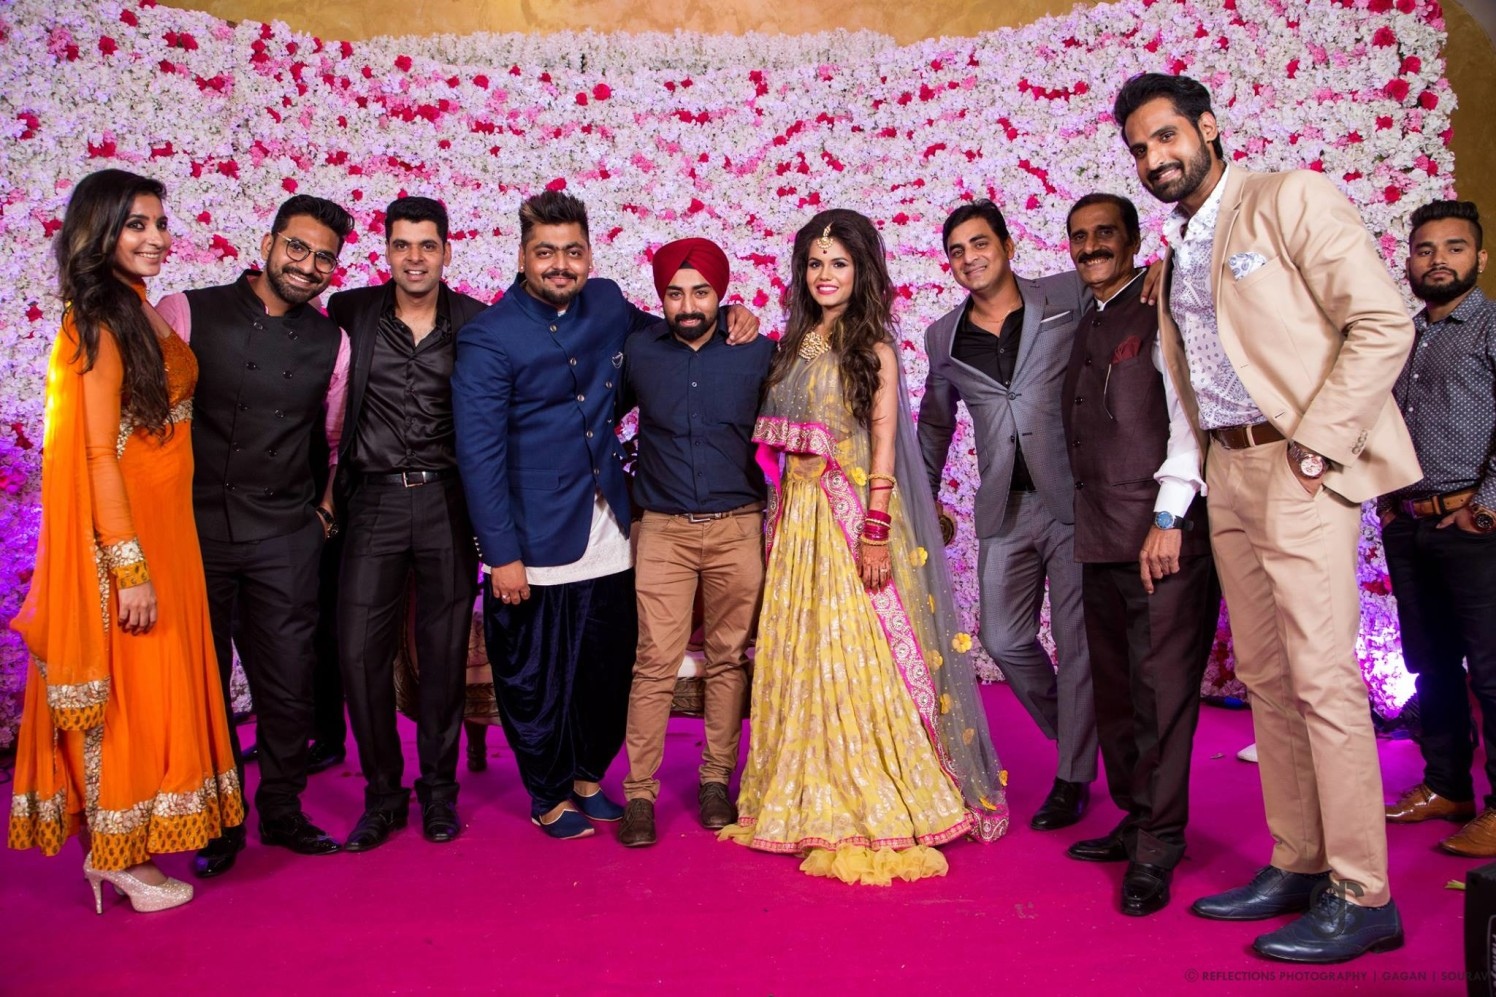 Friends like family! by Reflections Photography Wedding-photography | Weddings Photos & Ideas